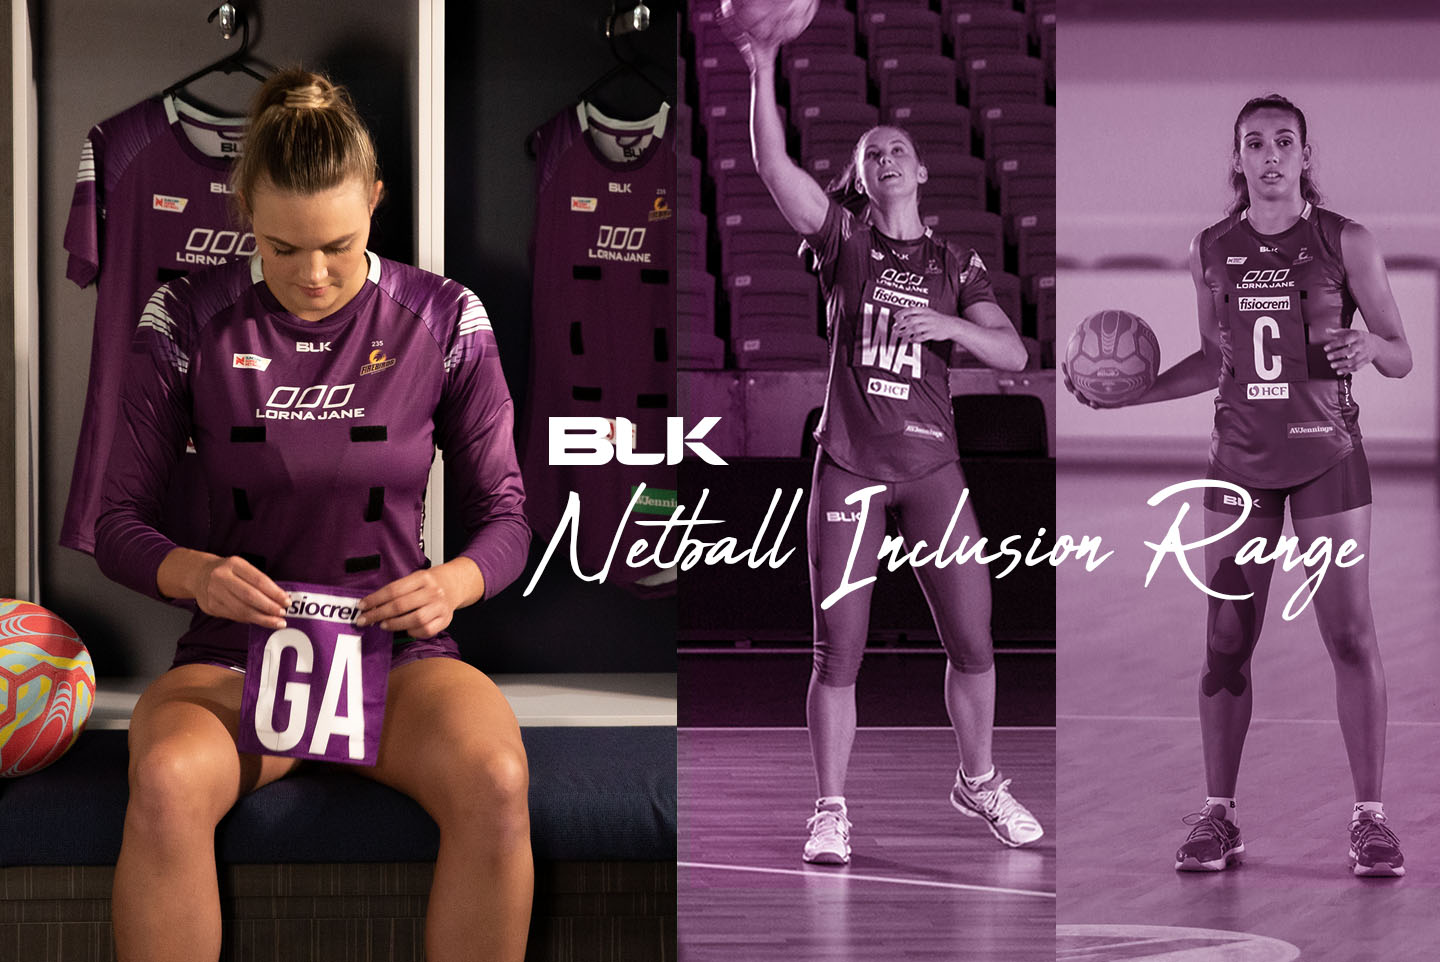 A MONUMENTAL SHIFT IN NETBALL